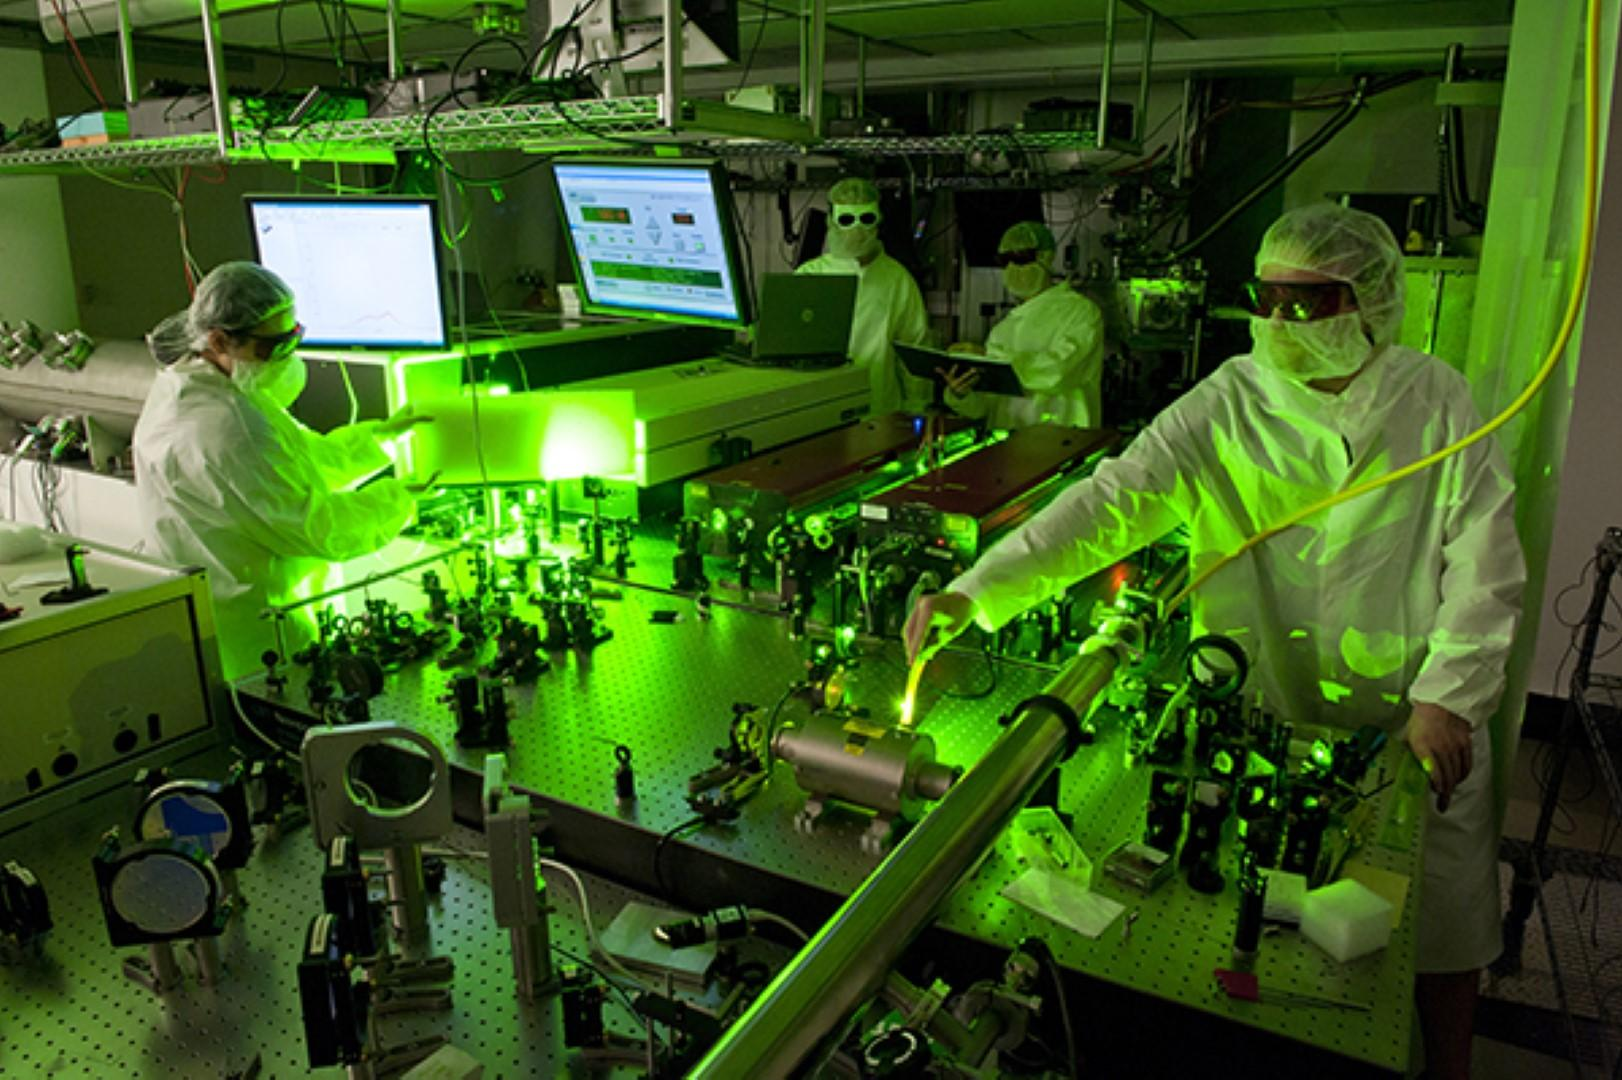 students in lab with green lights